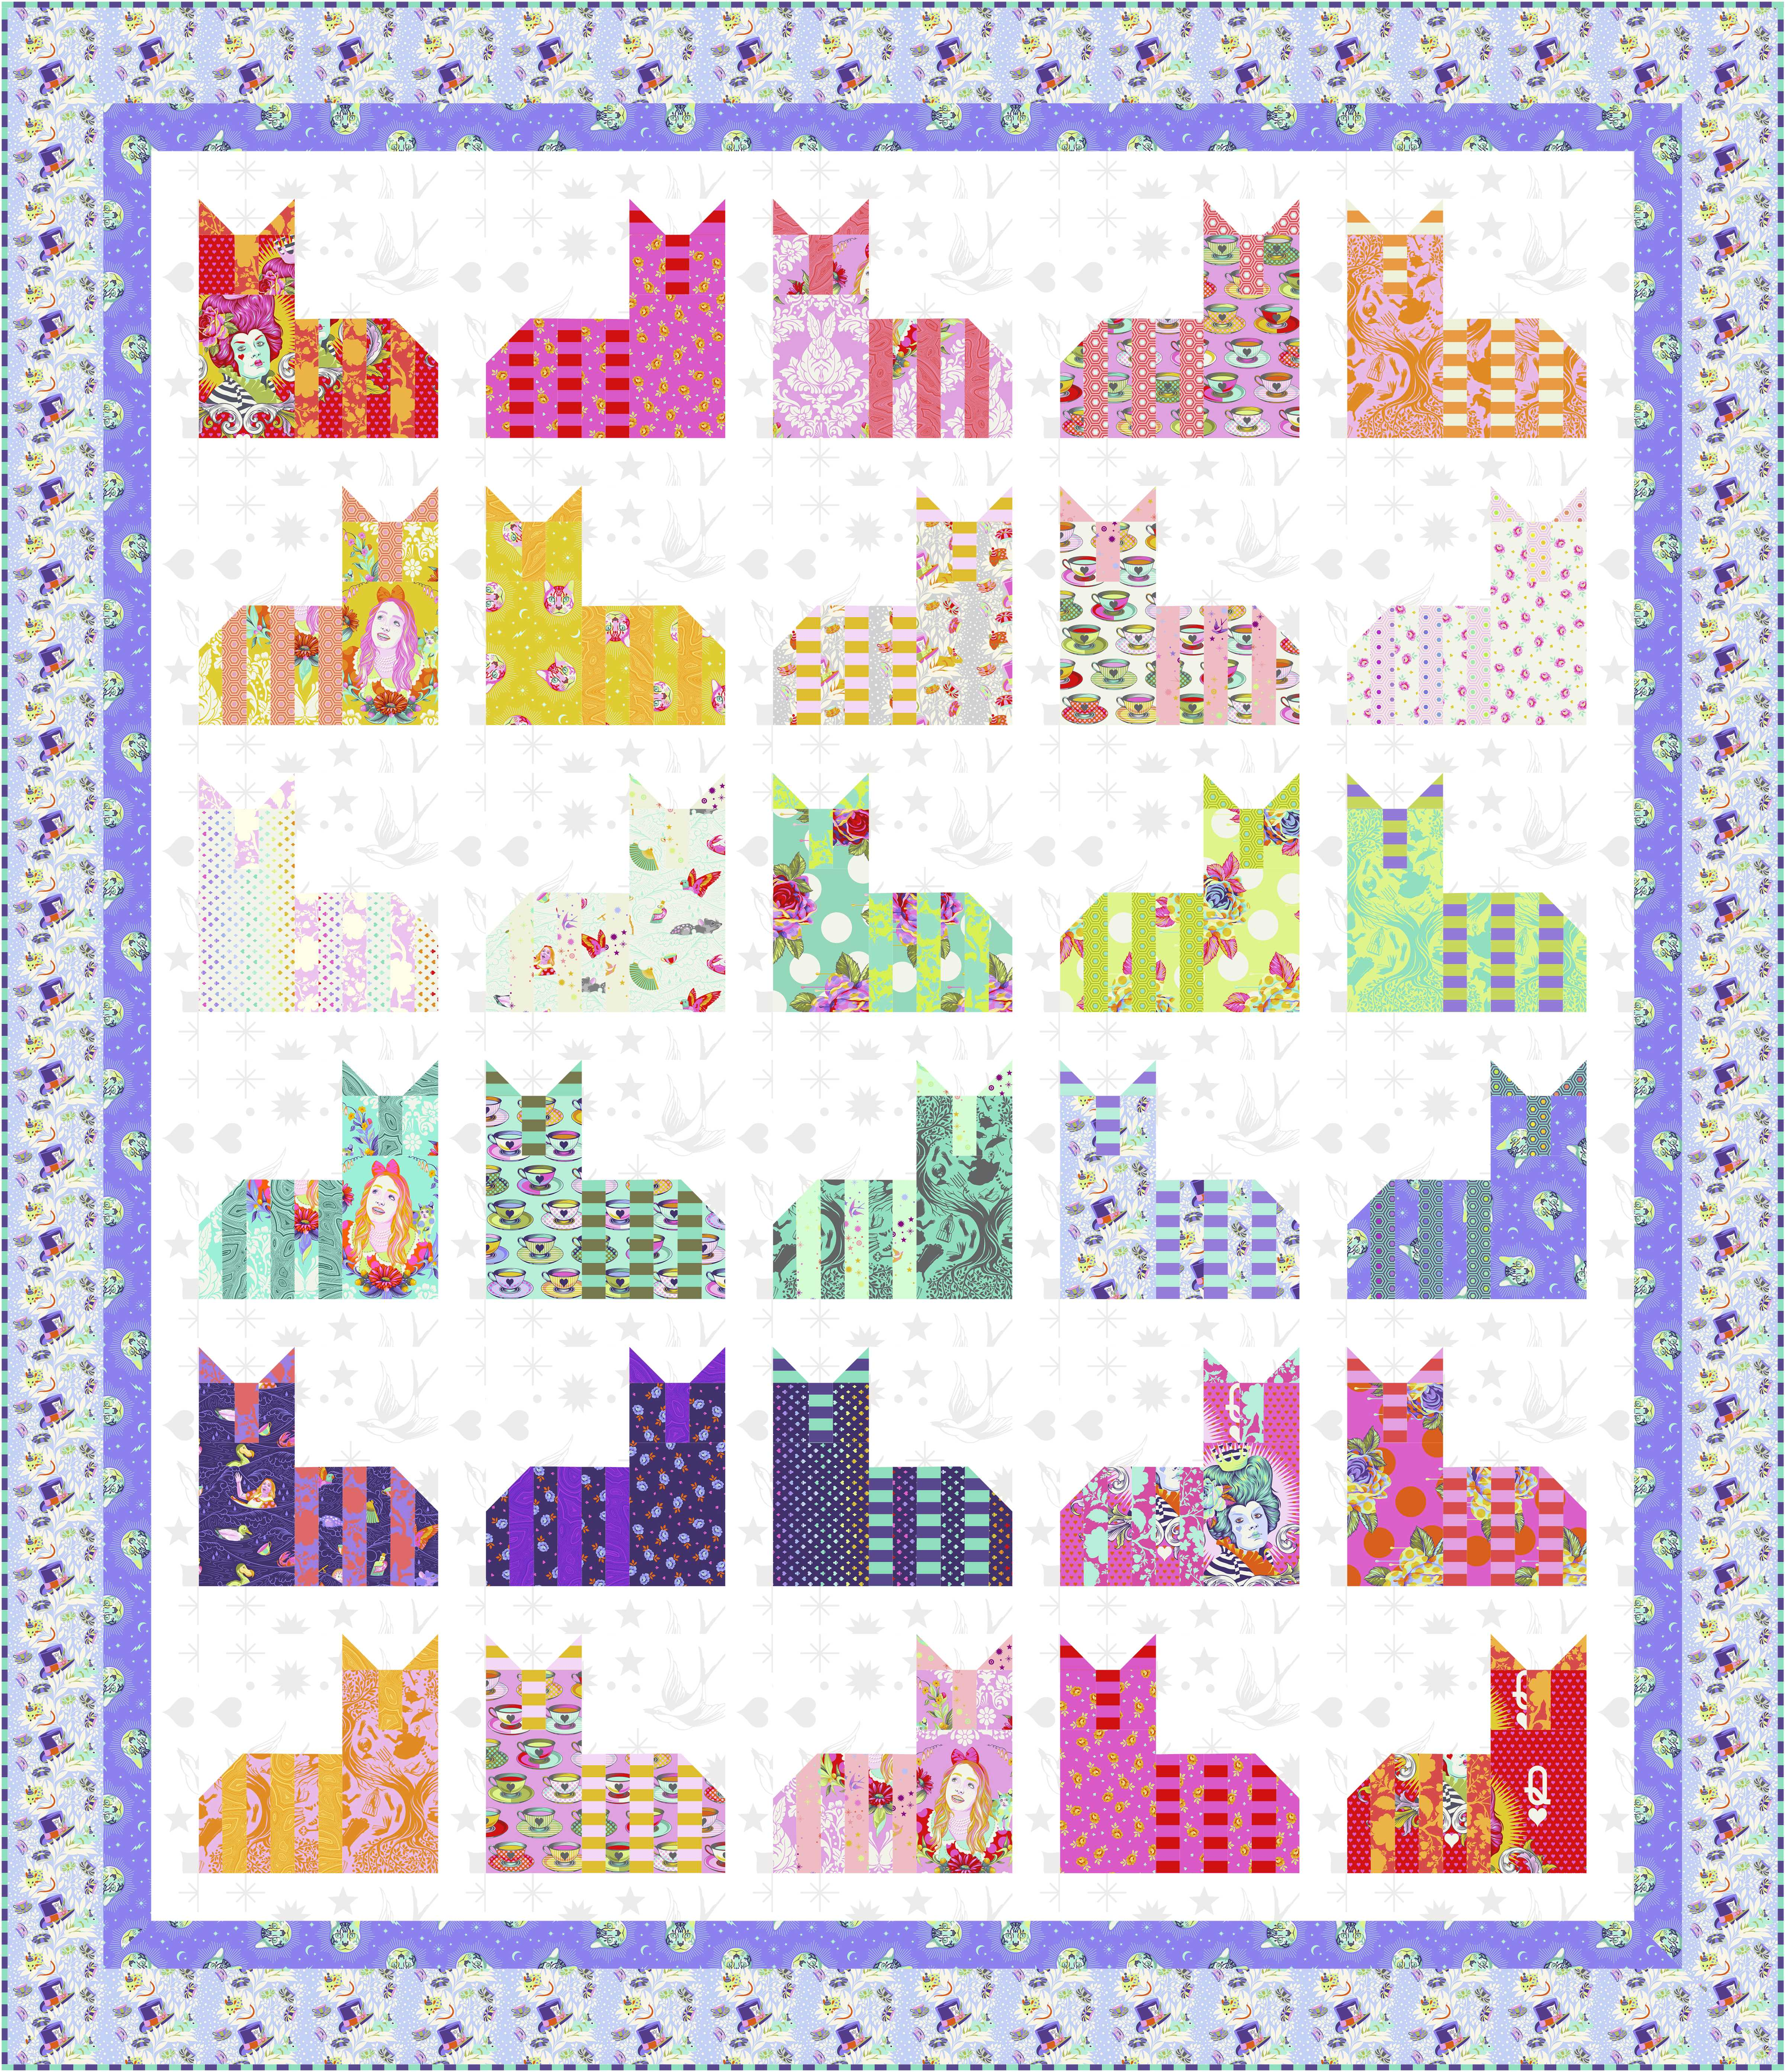 Cheshire Cats - Flake Revised